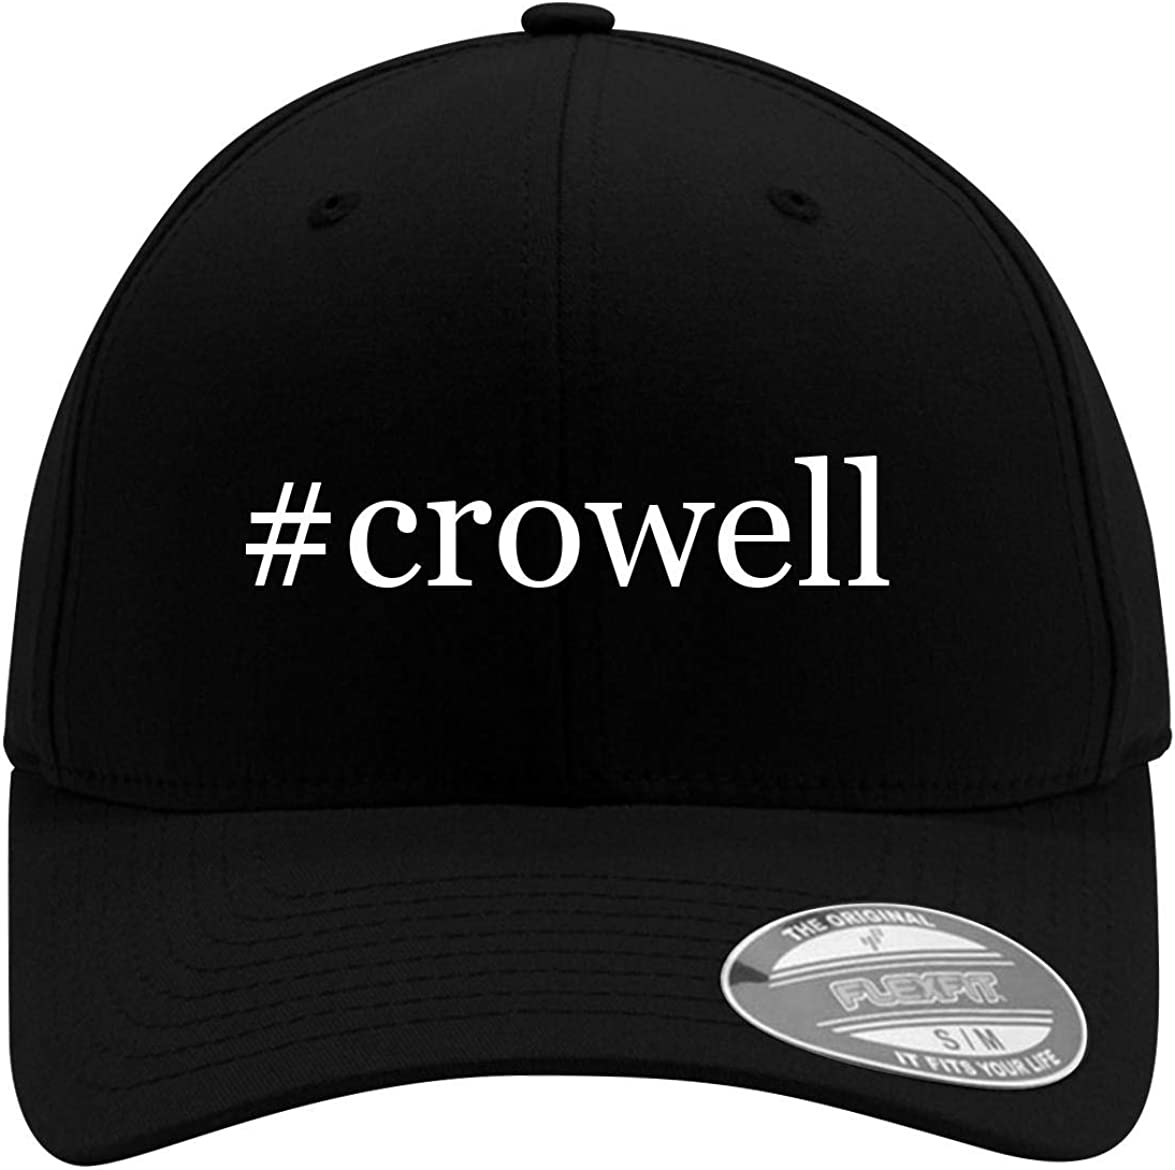 #Crowell - Adult Men'S Hashtag Flexfit Baseball Hat Cap